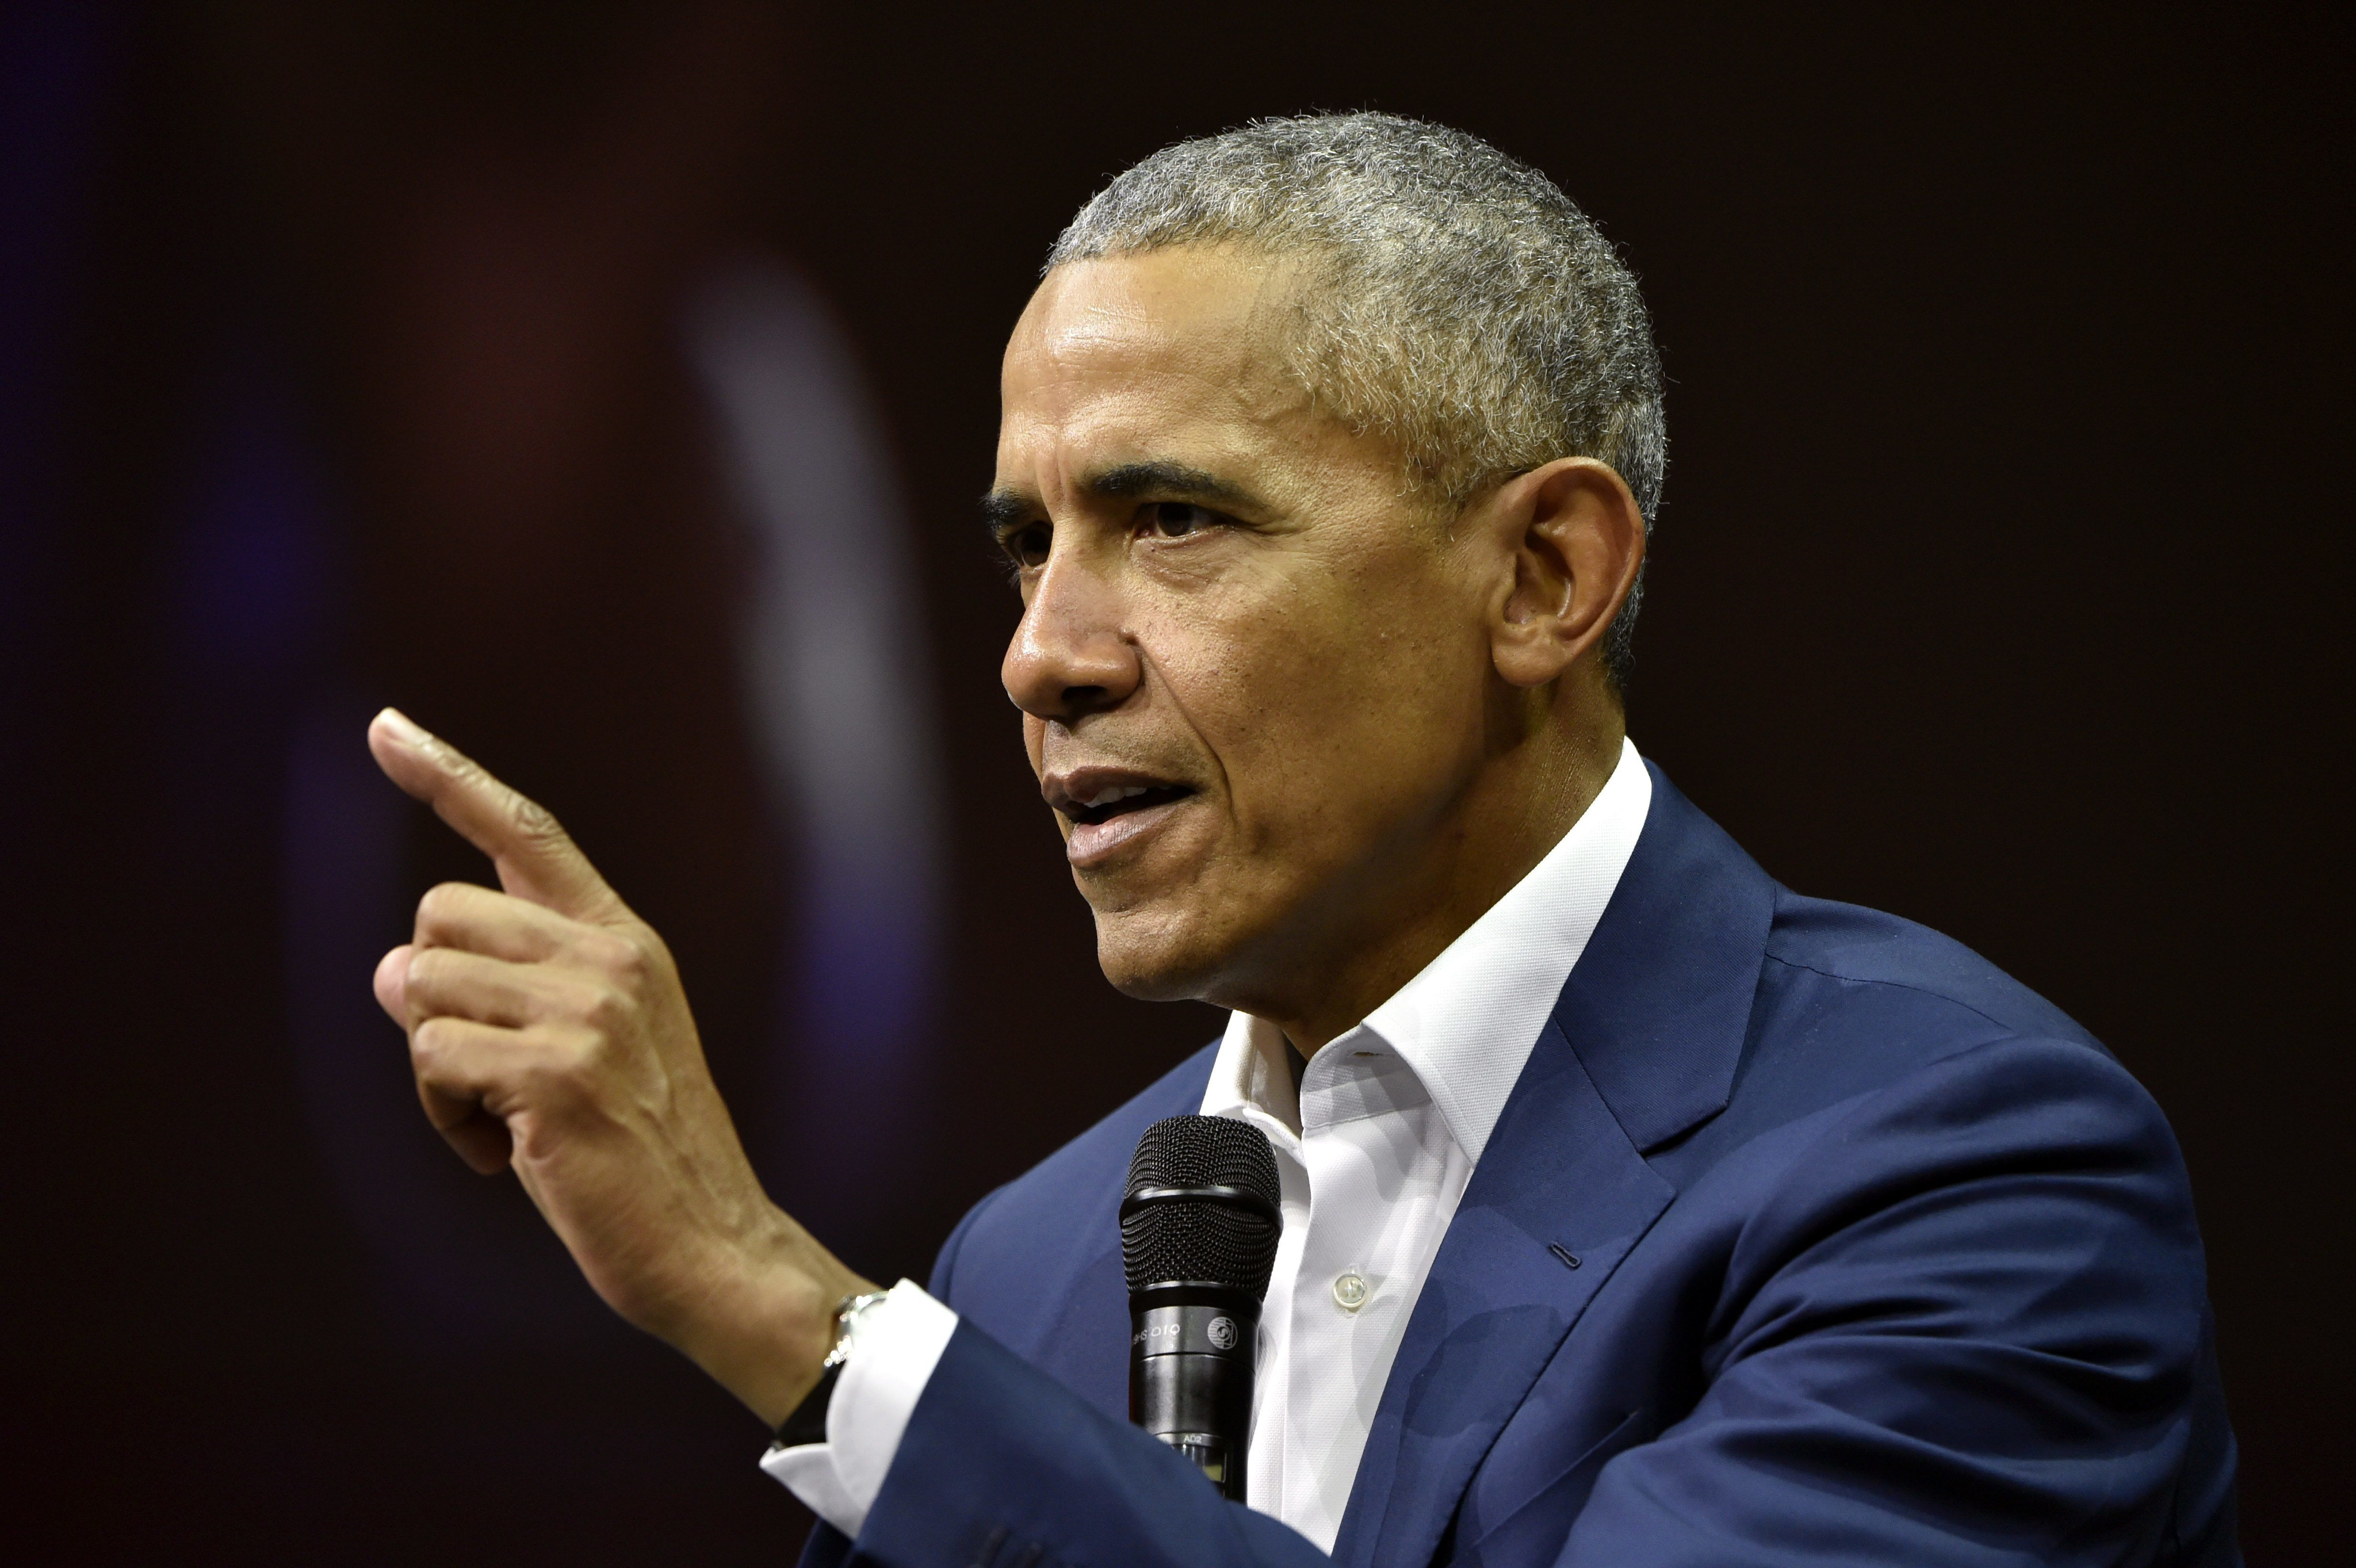 Former President of the United States, Barack Obama, addresses the Nordic Business Forum business seminar in Helsinki, Finland on September 27, 2018. (Photo by Jussi Nukari / Lehtikuva / AFP) / Finland OUT        (Photo credit should read JUSSI NUKARI/AFP/Getty Images)